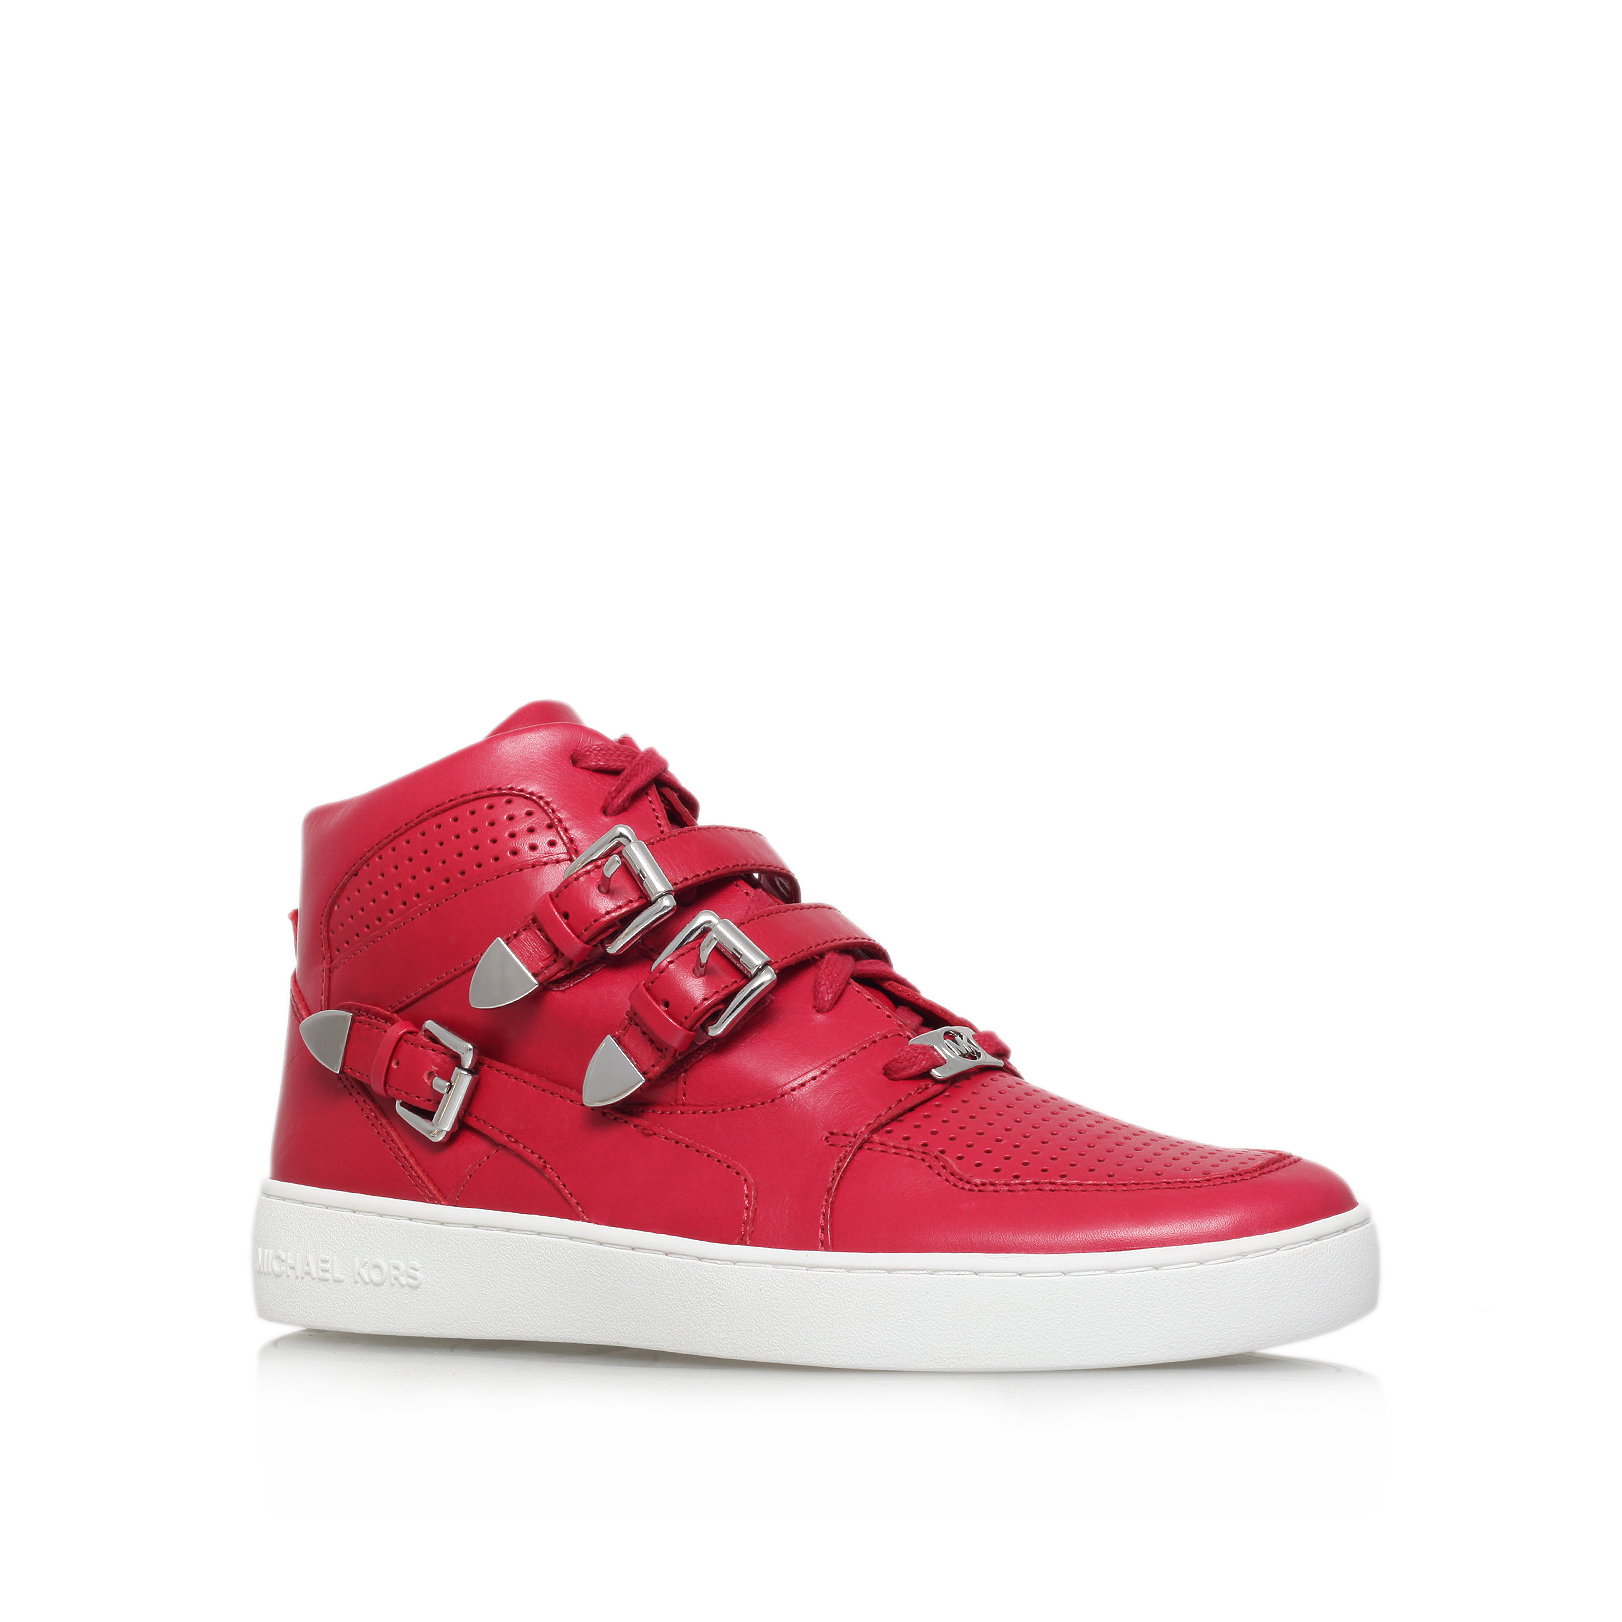 ROBIN HIGH TOP SNEAKER